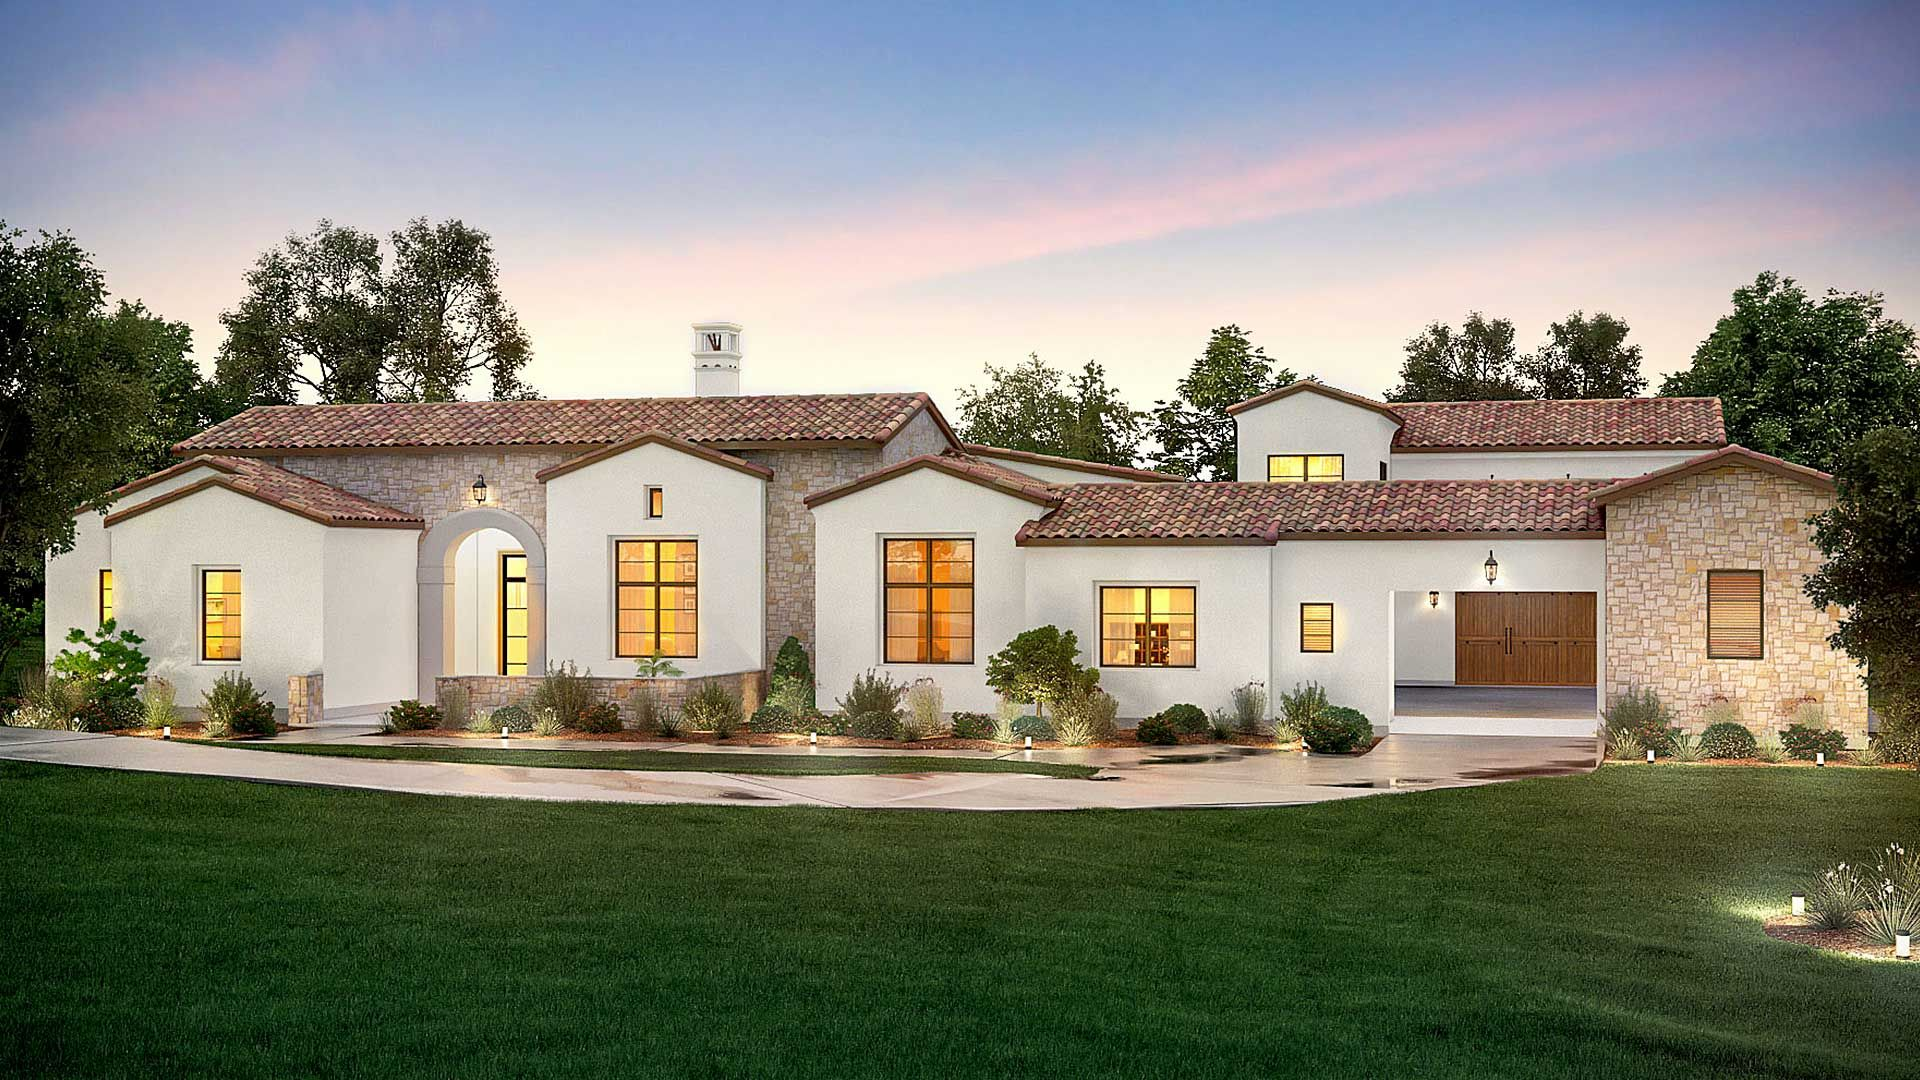 Garner Homes Current Projects Spanish Revival Home Spanish Style Homes Hacienda Style Homes